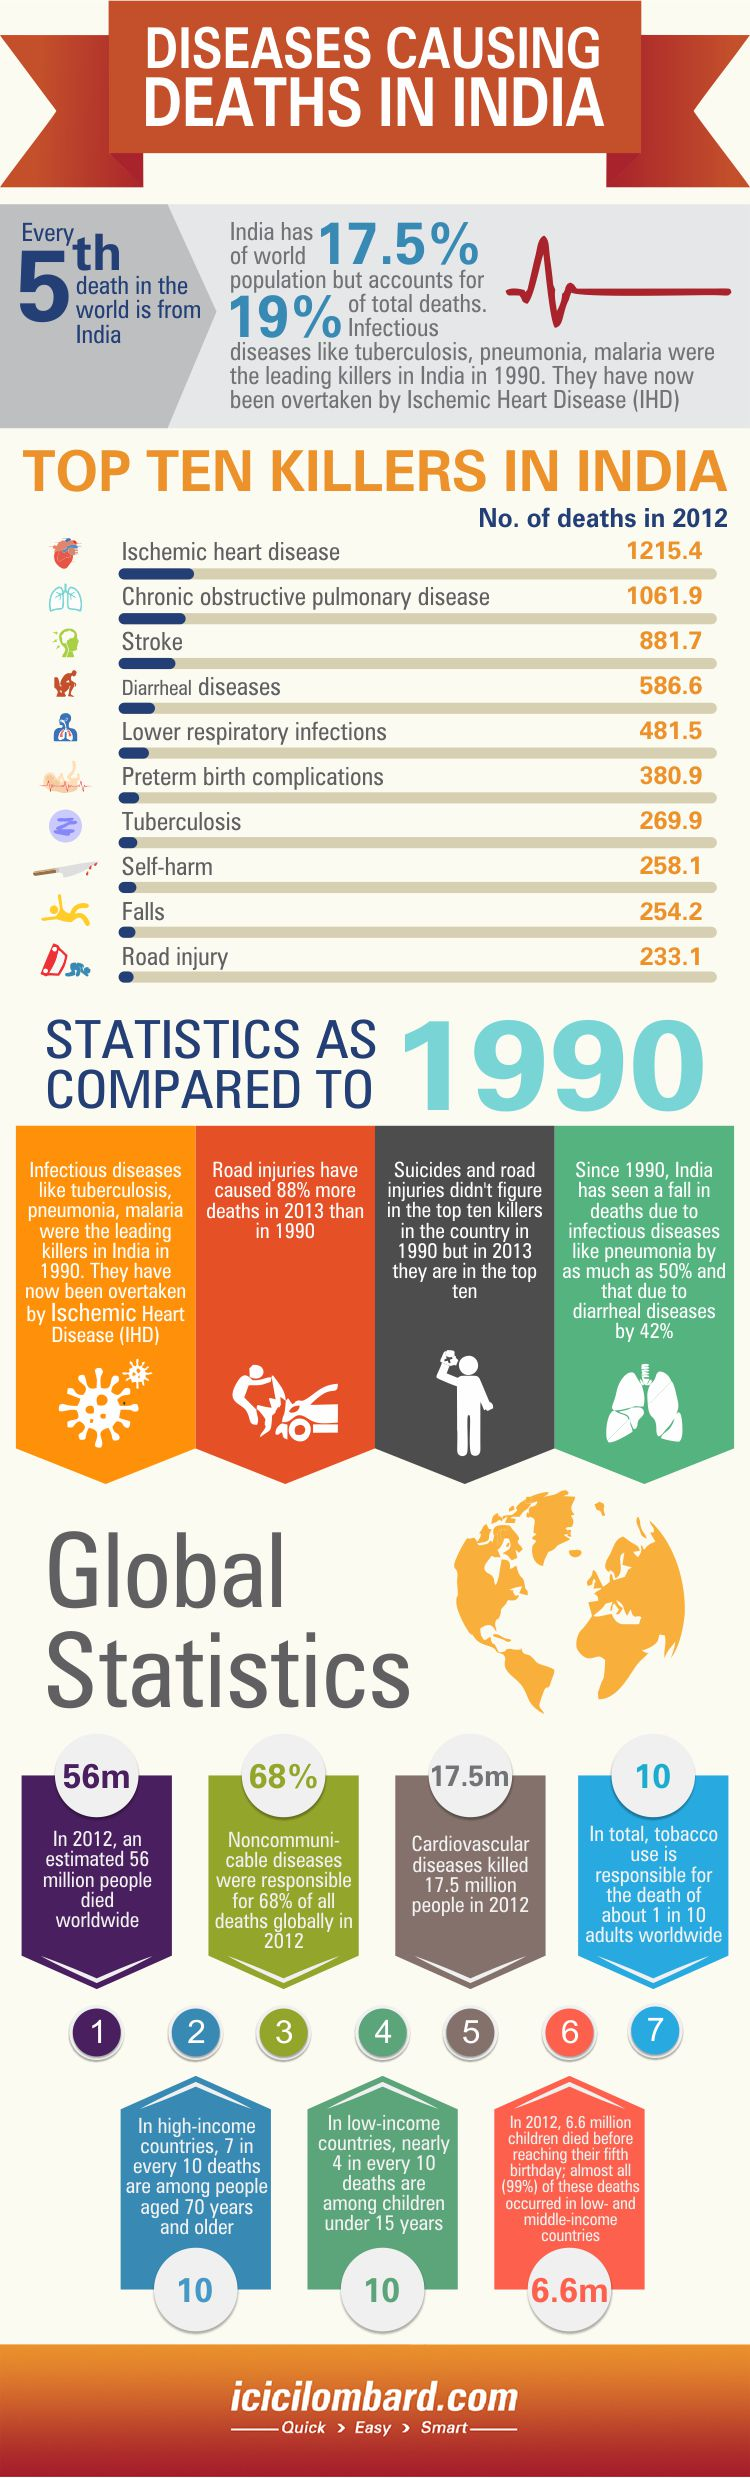 20151118-diseases-causing-deaths-in-india